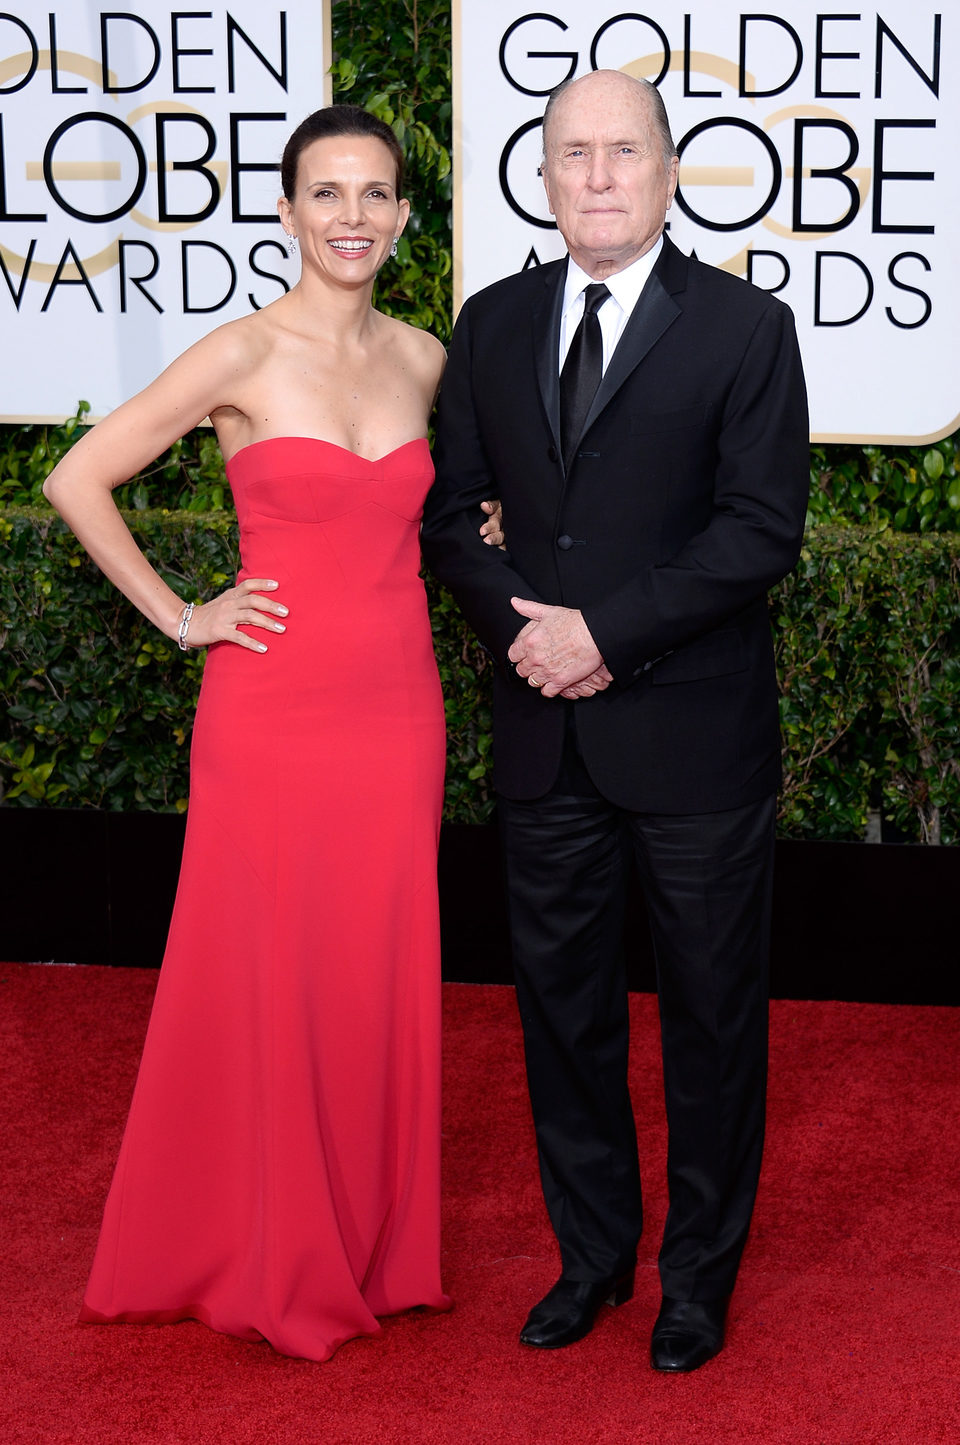 Robert Duvall and Luciana Pedraza at the Golden Globes 2015 red carpet